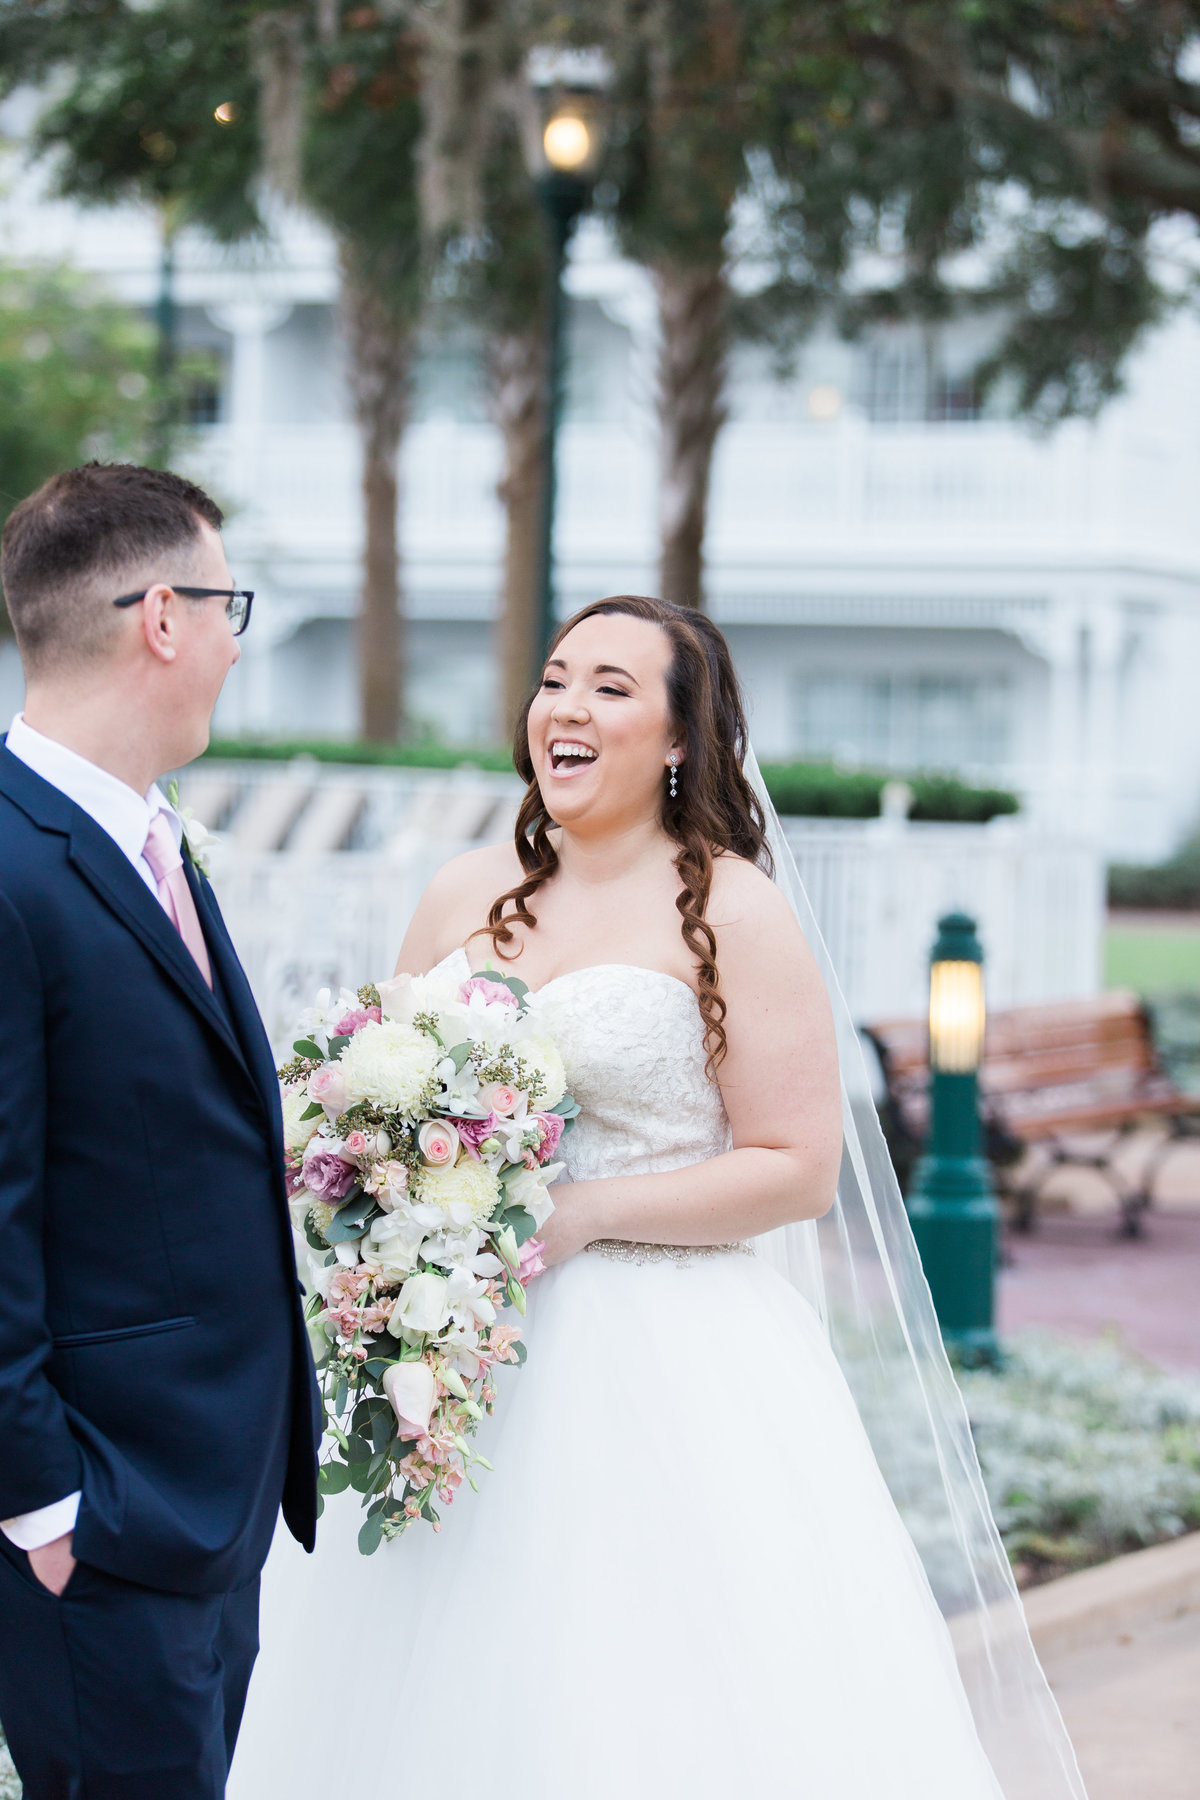 Jess Collins Photography Our Disney Wedding 2017 (195 of 668)